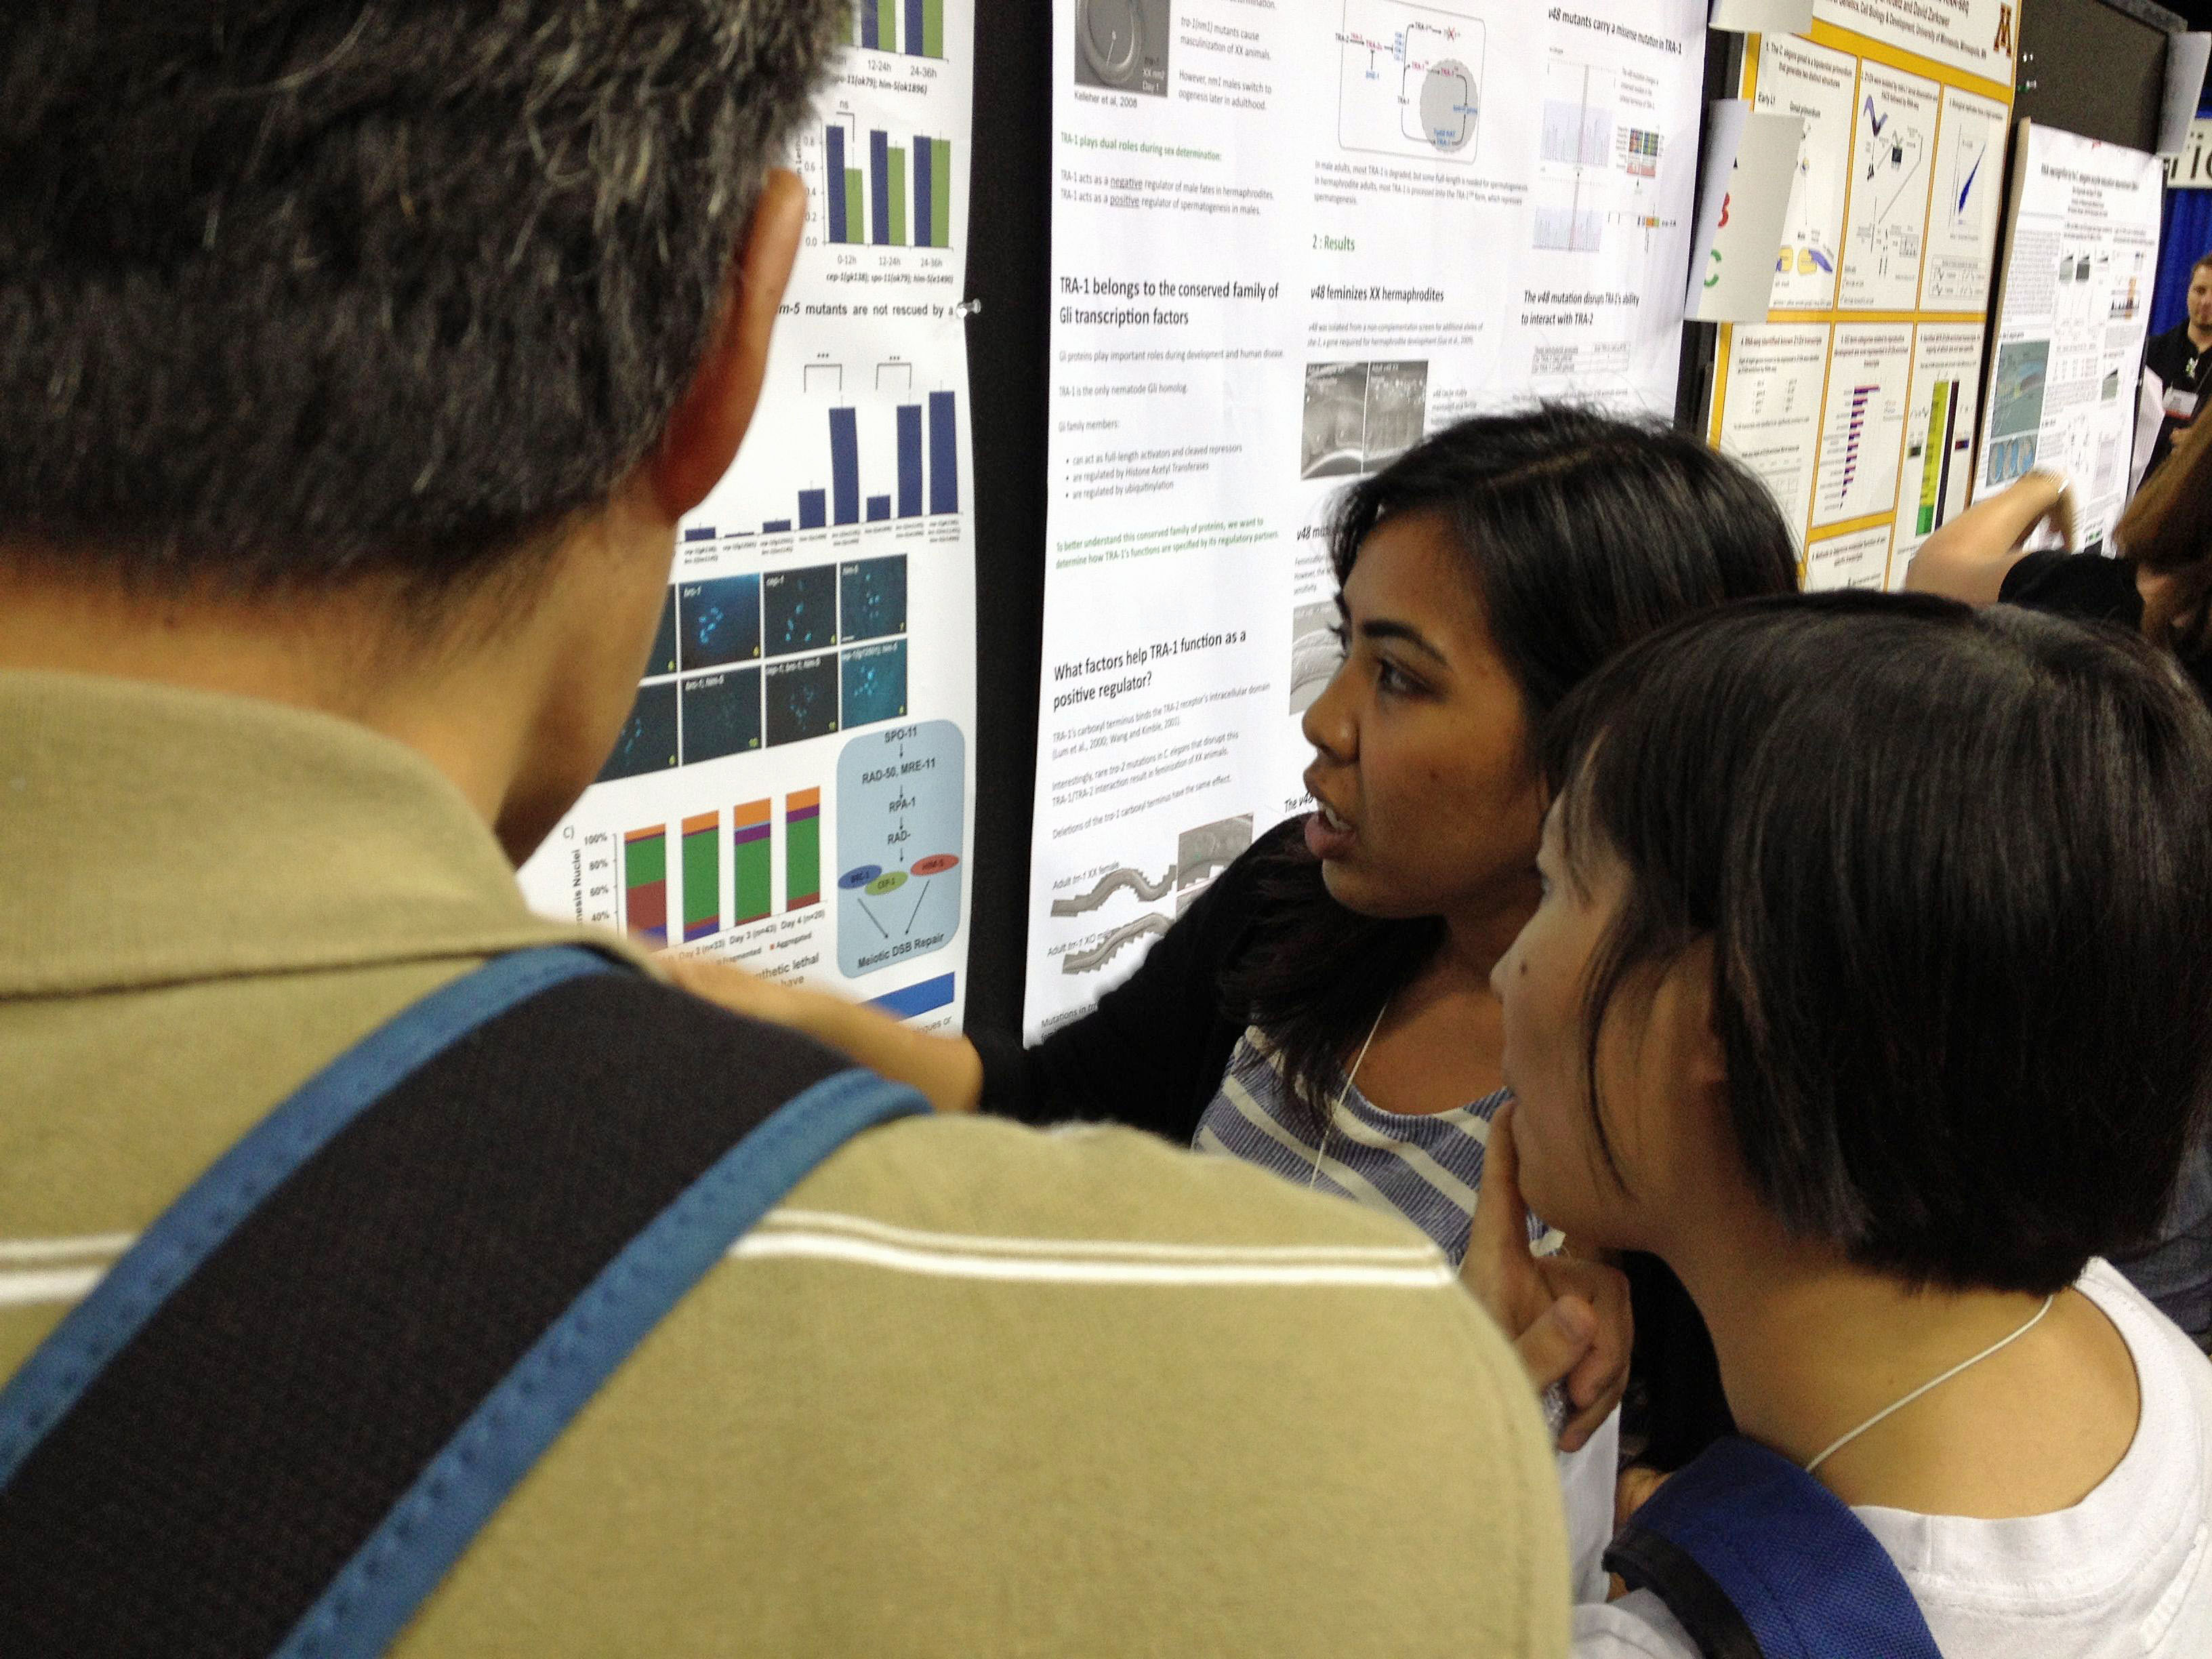 Abigail presenting her poster at the Worm Meeting